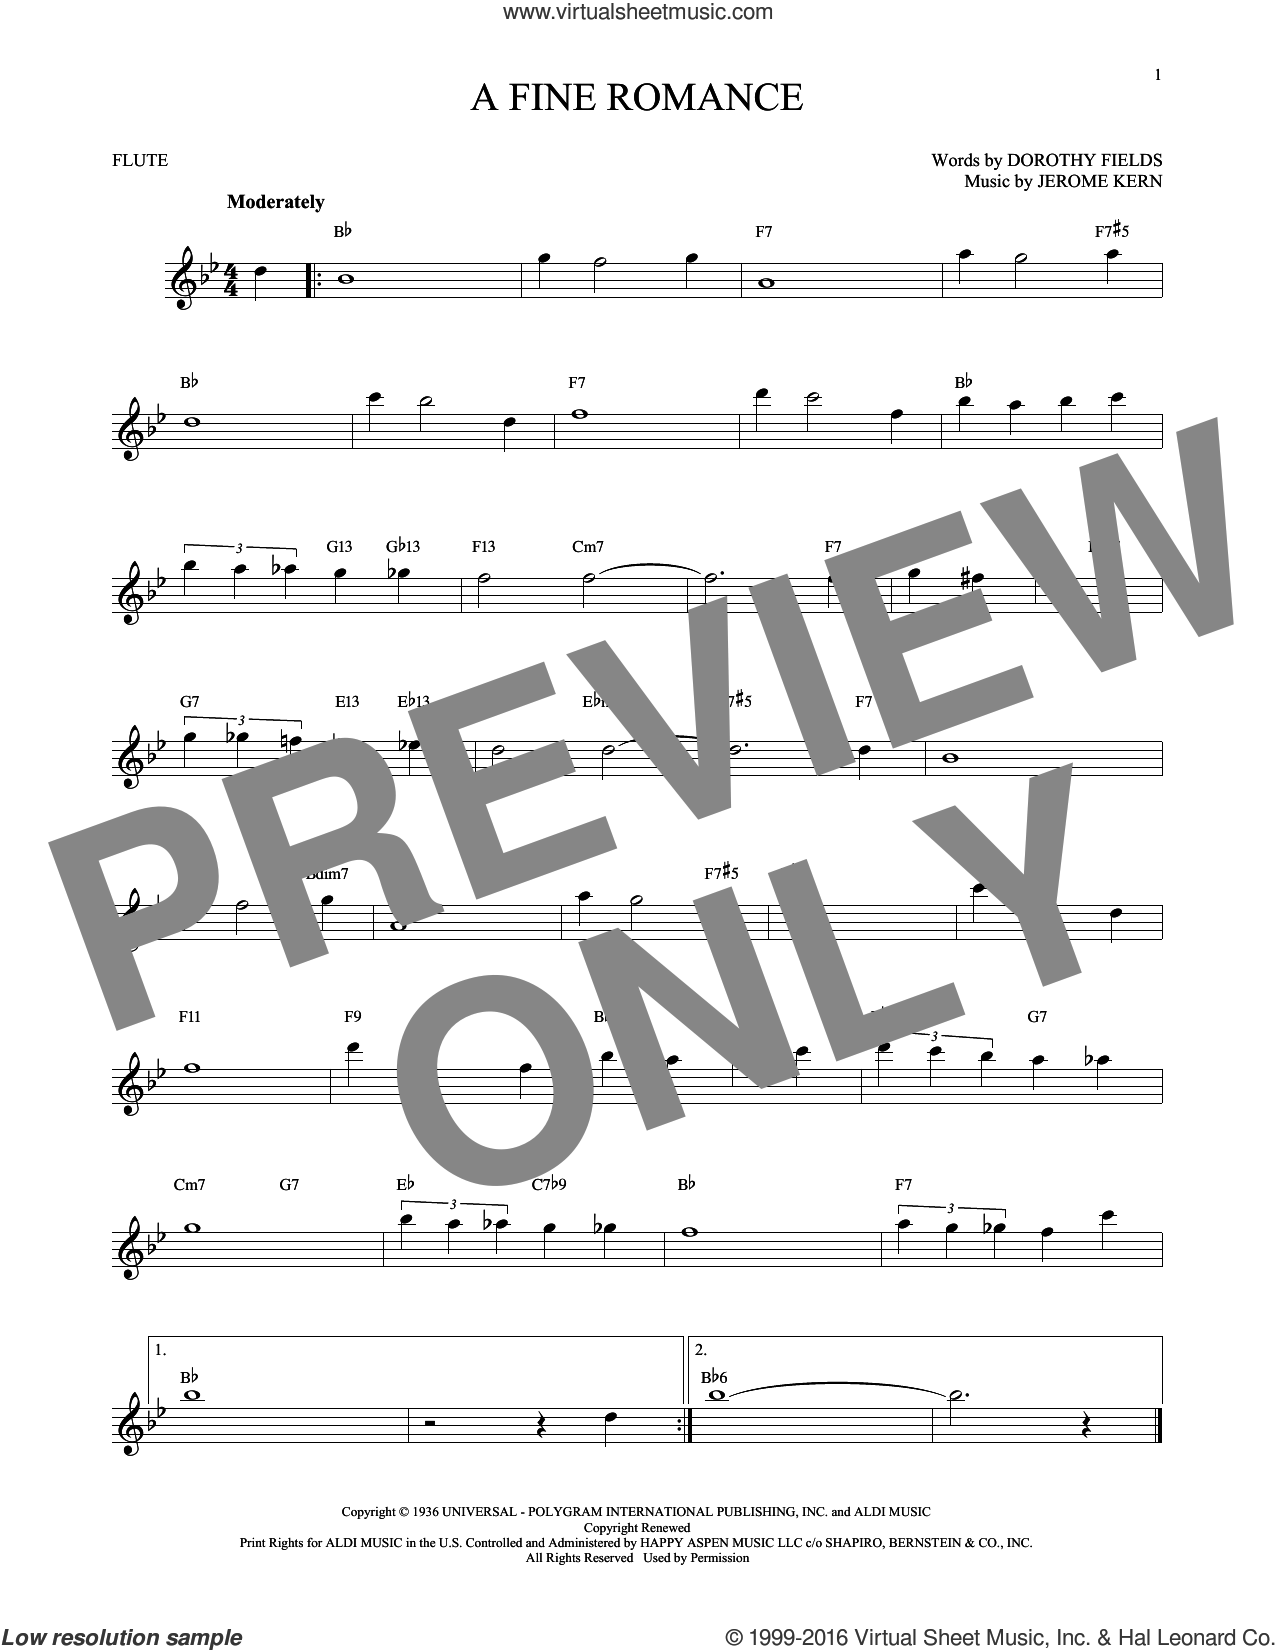 A Fine Romance sheet music for flute solo by Jerome Kern and Dorothy Fields, intermediate skill level